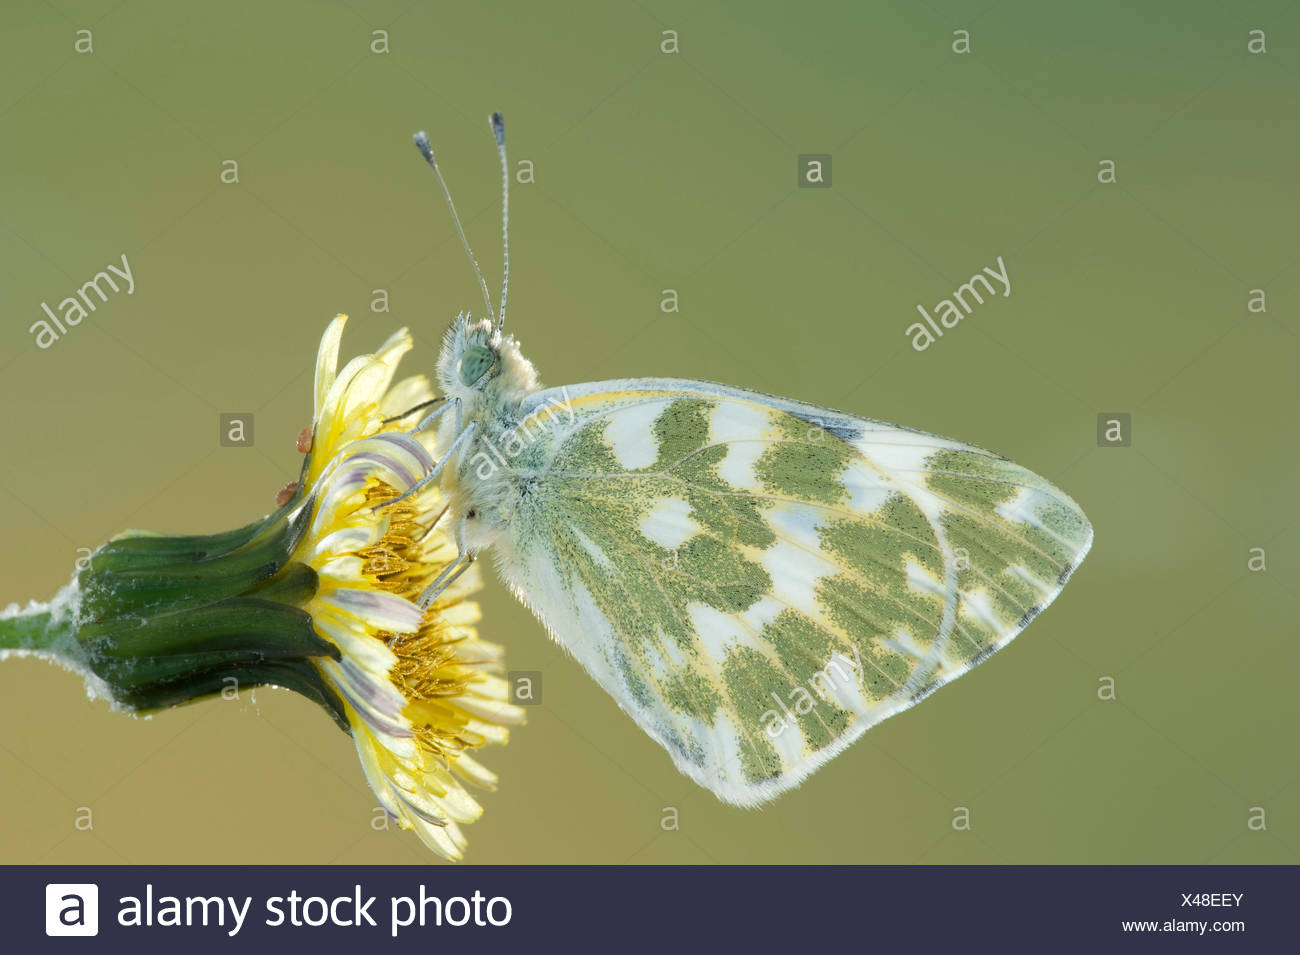 Bath White Butterfly, Pontia daplidice, South West Europe & North Africa, side view of wings on flower, occurs in the Palearctic region. It is common  - Stock Image